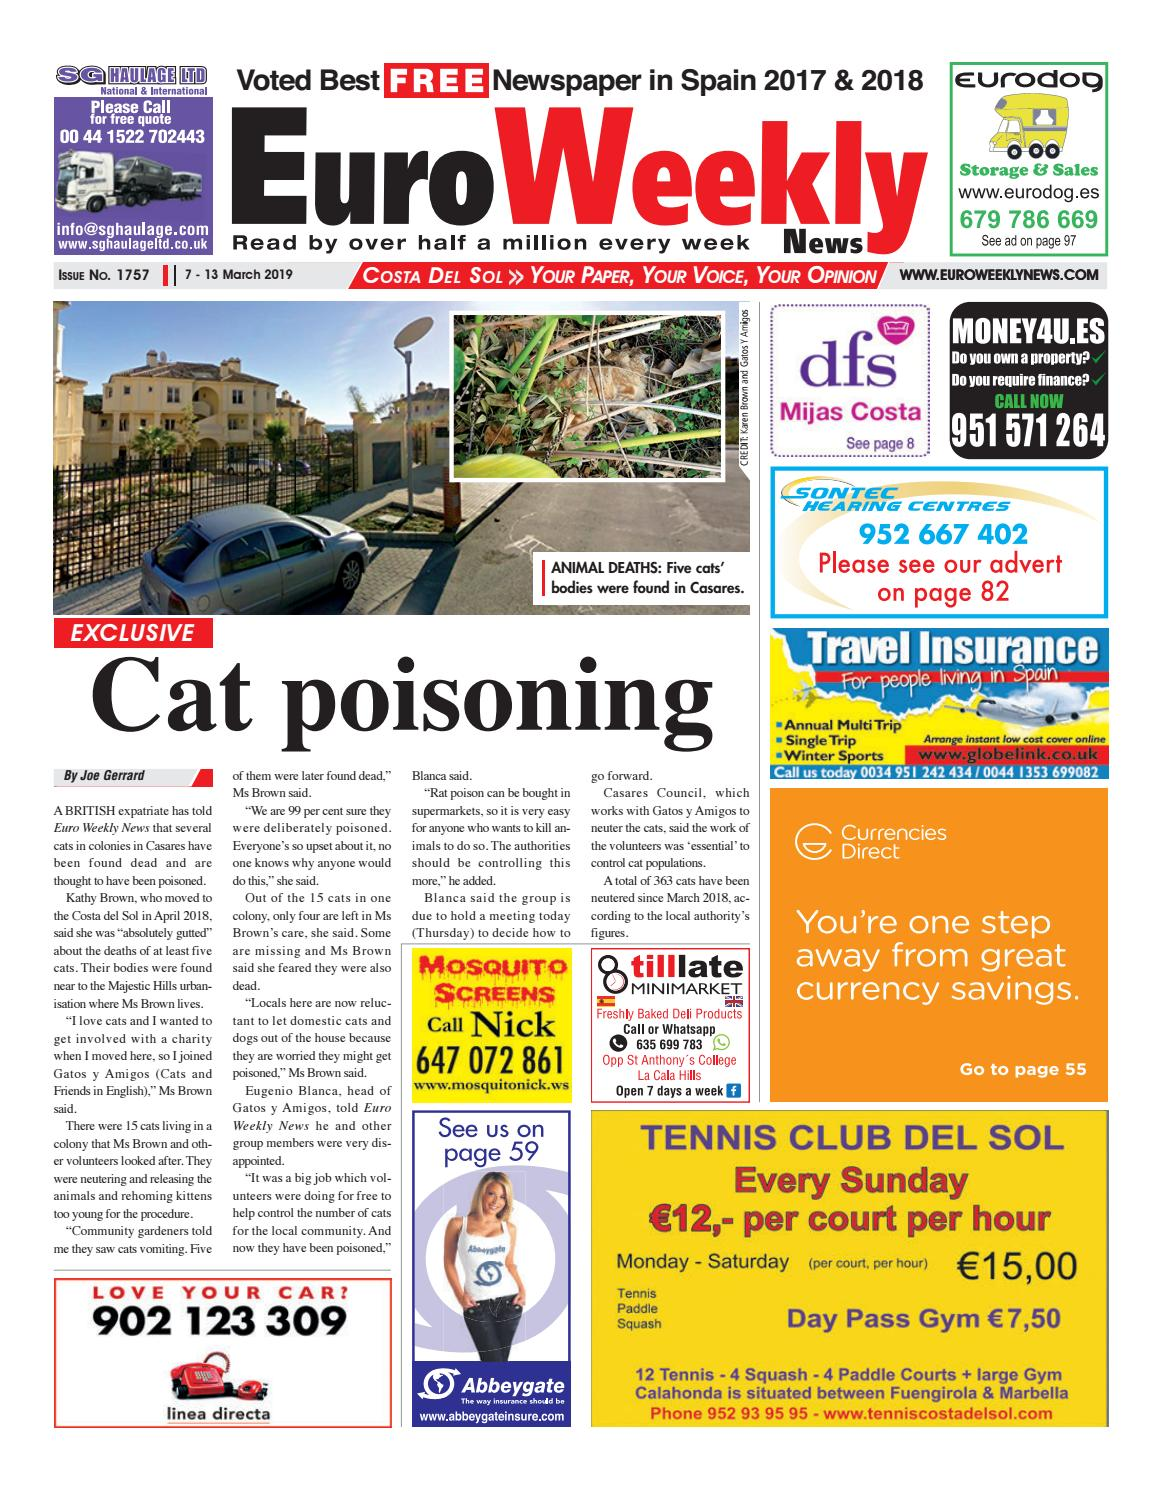 58412ee95 Euro Weekly News - Costa del Sol 7 - 13 March 2019 Issue 1757 by Euro  Weekly News Media S.A. - issuu